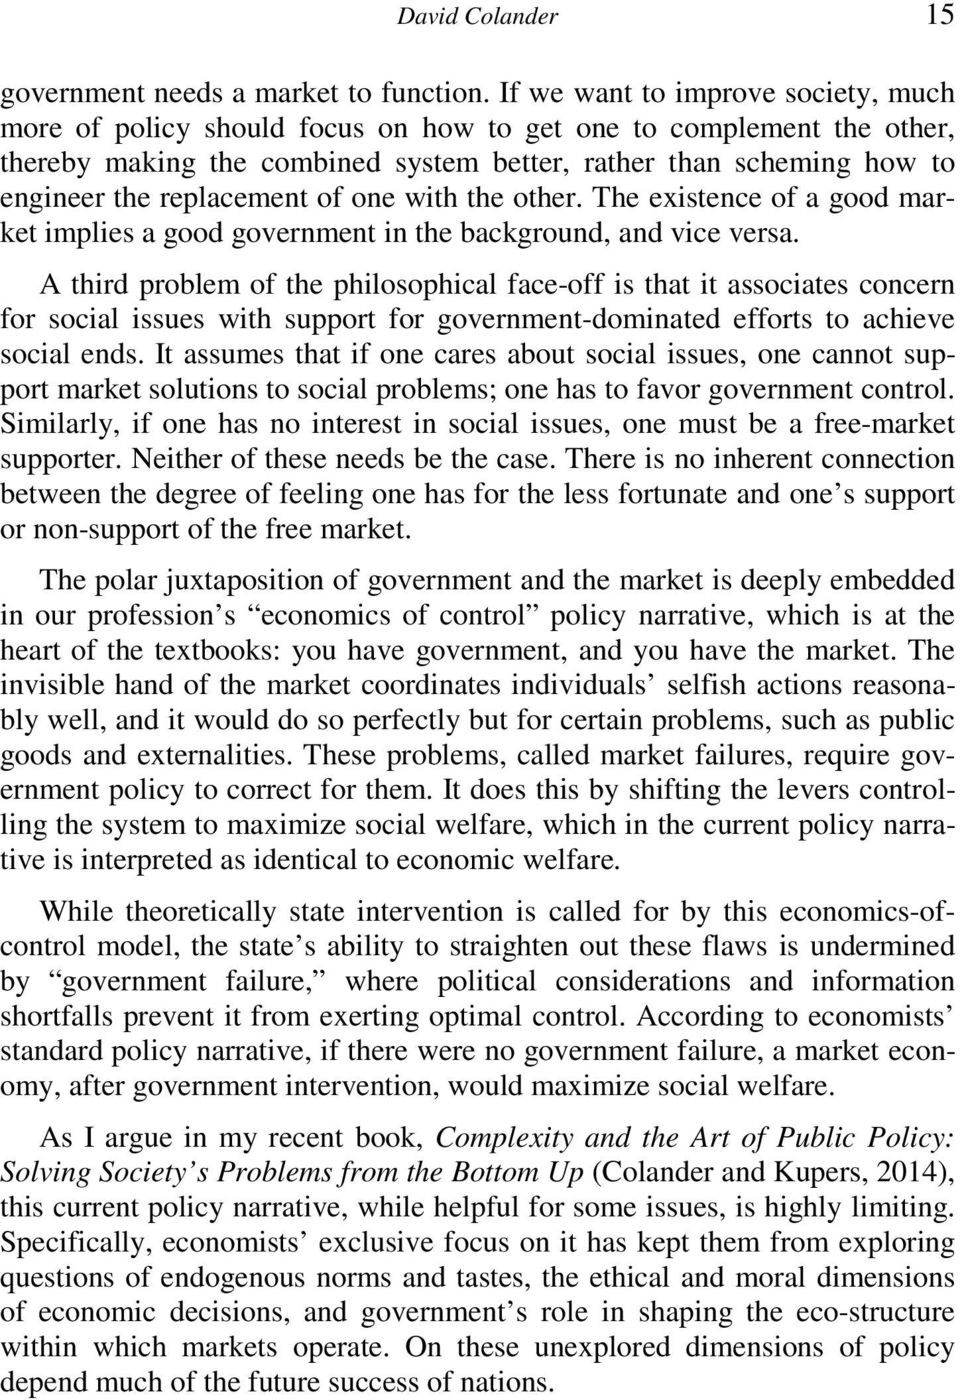 replacement of one with the other. The existence of a good market implies a good government in the background, and vice versa.